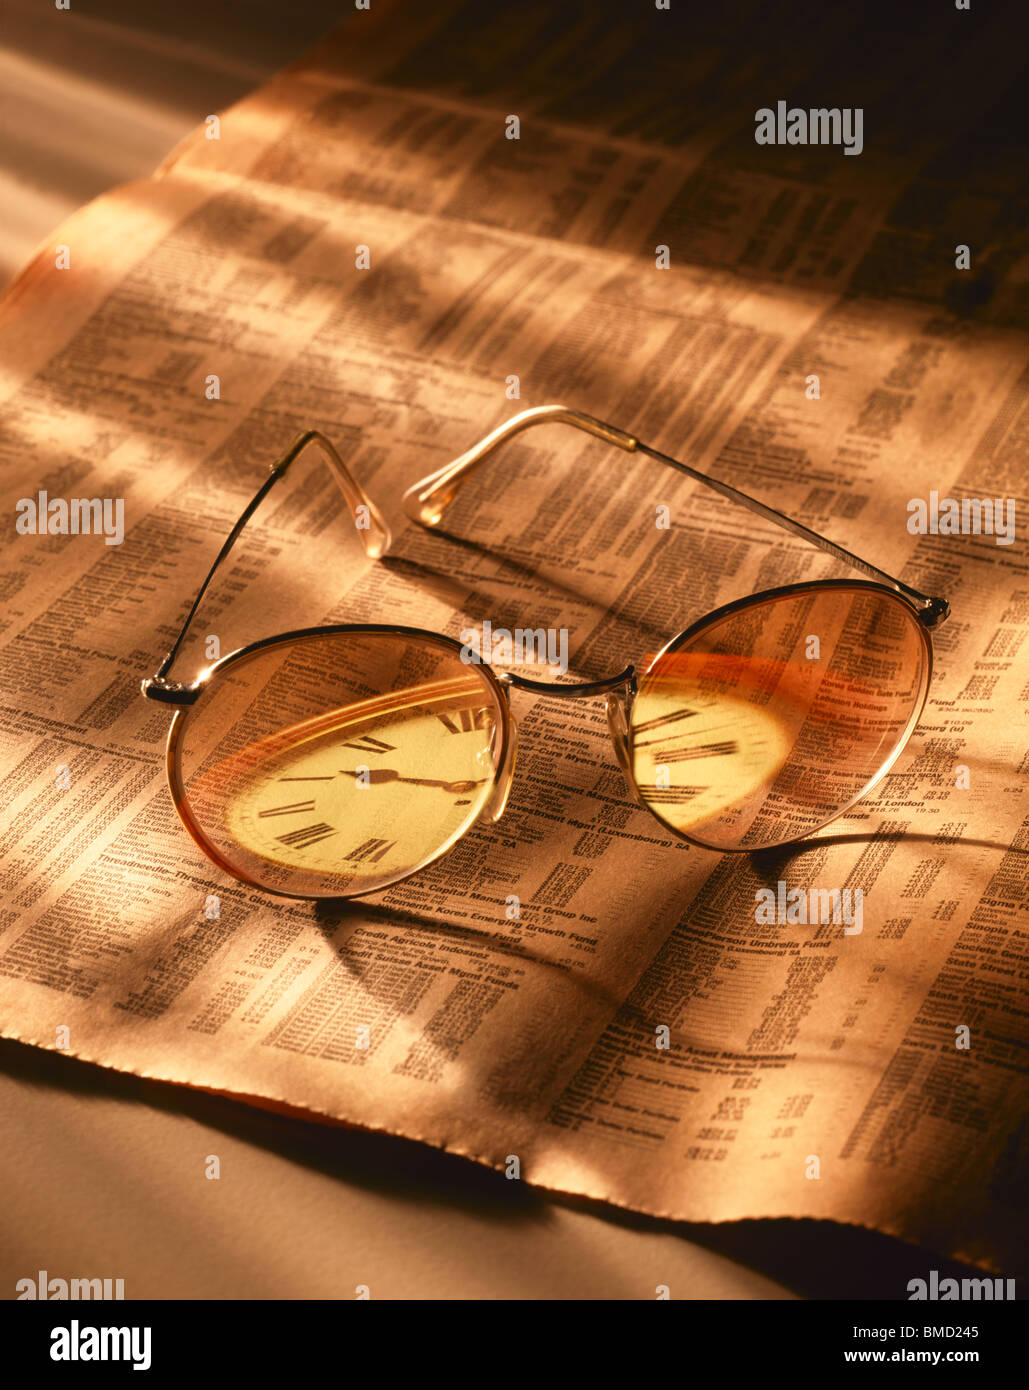 Glasses on the Financial Times with Reflected Clock Stock Photo